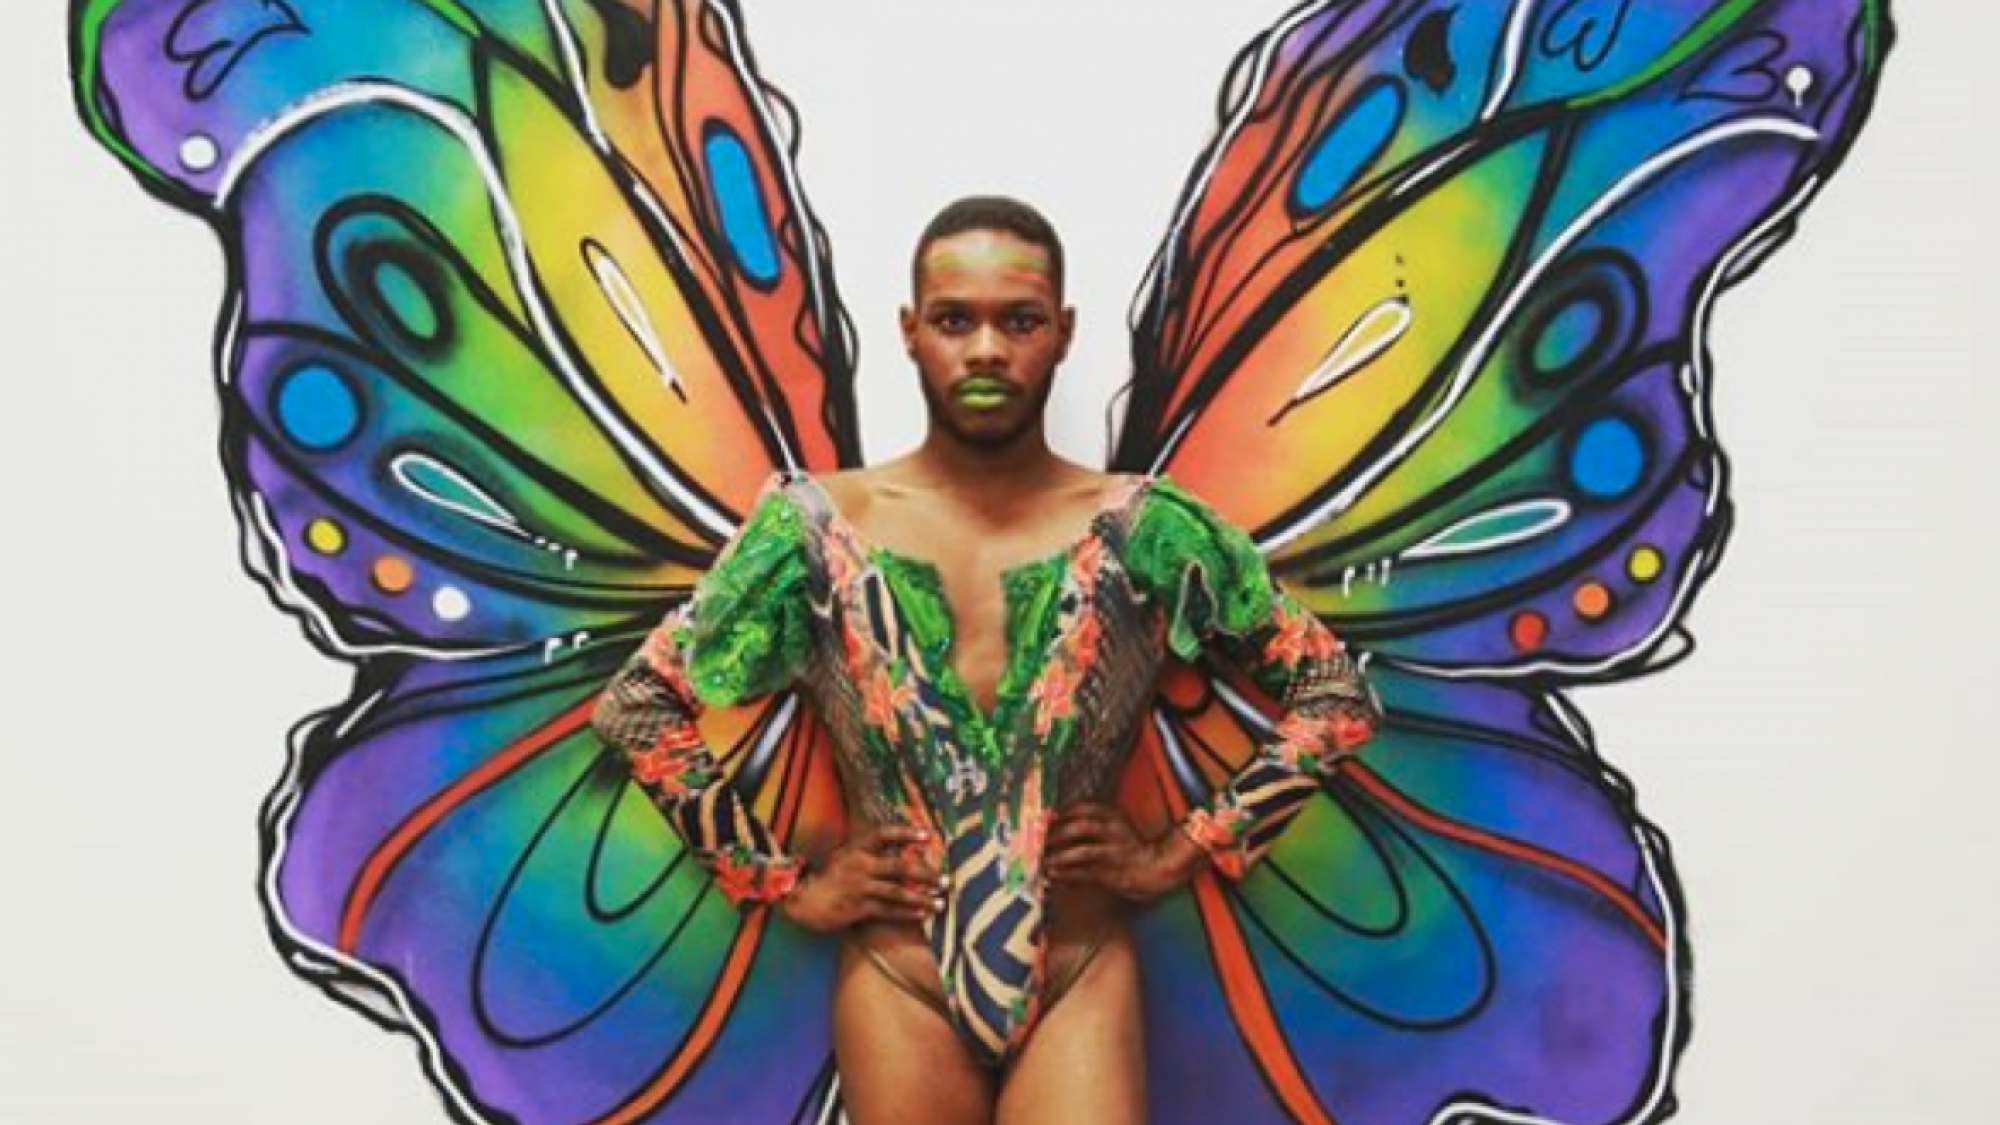 Man in brightly coloured body paint with butterfly wings